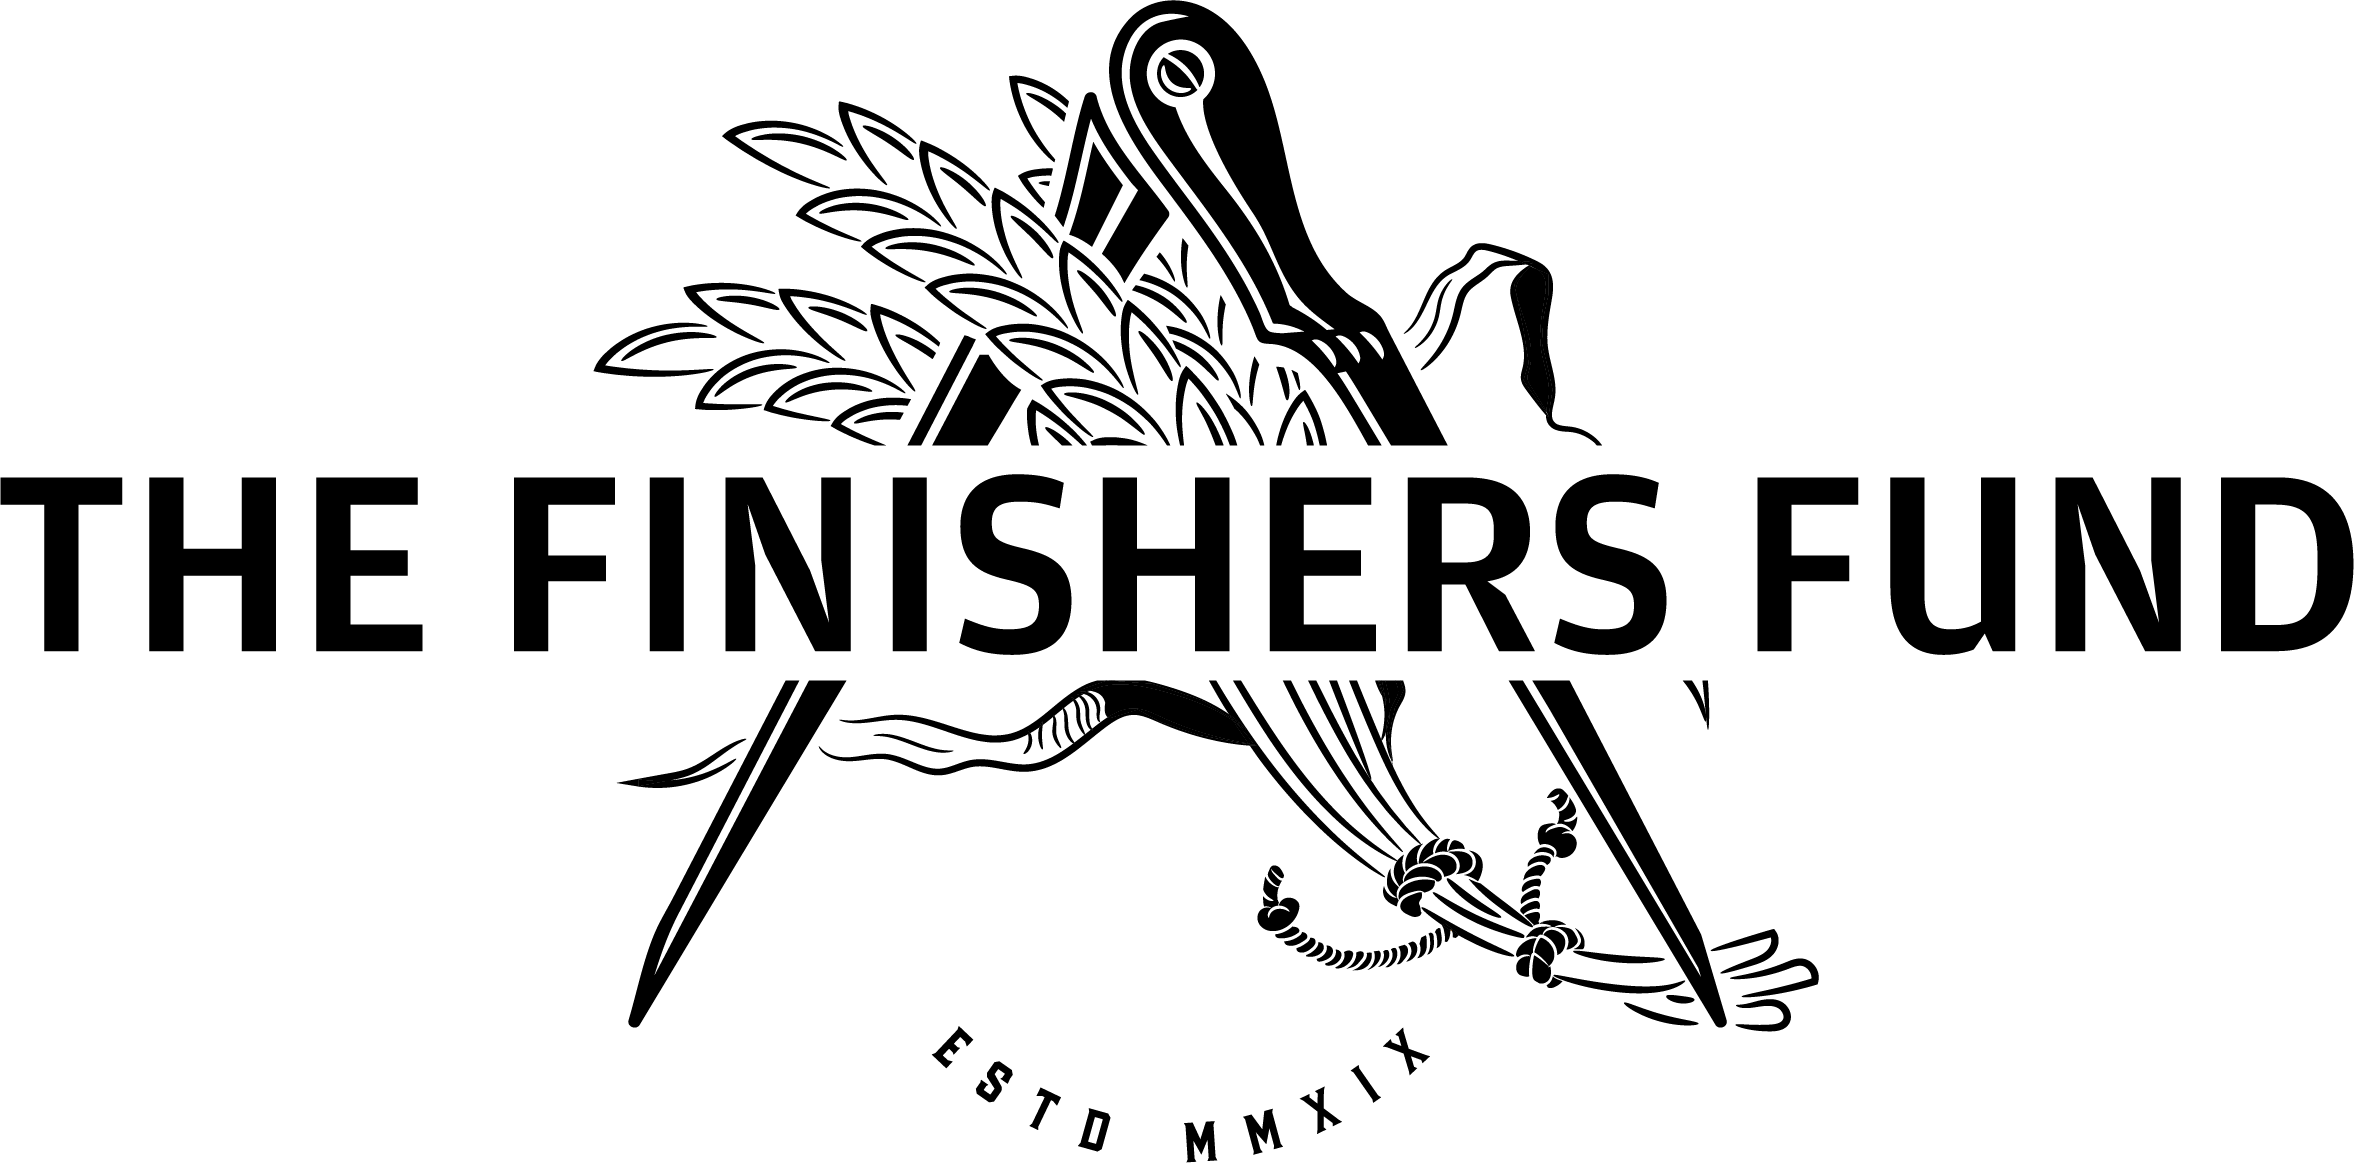 FINISHERS LOGO WITH TEXT BLACK.png